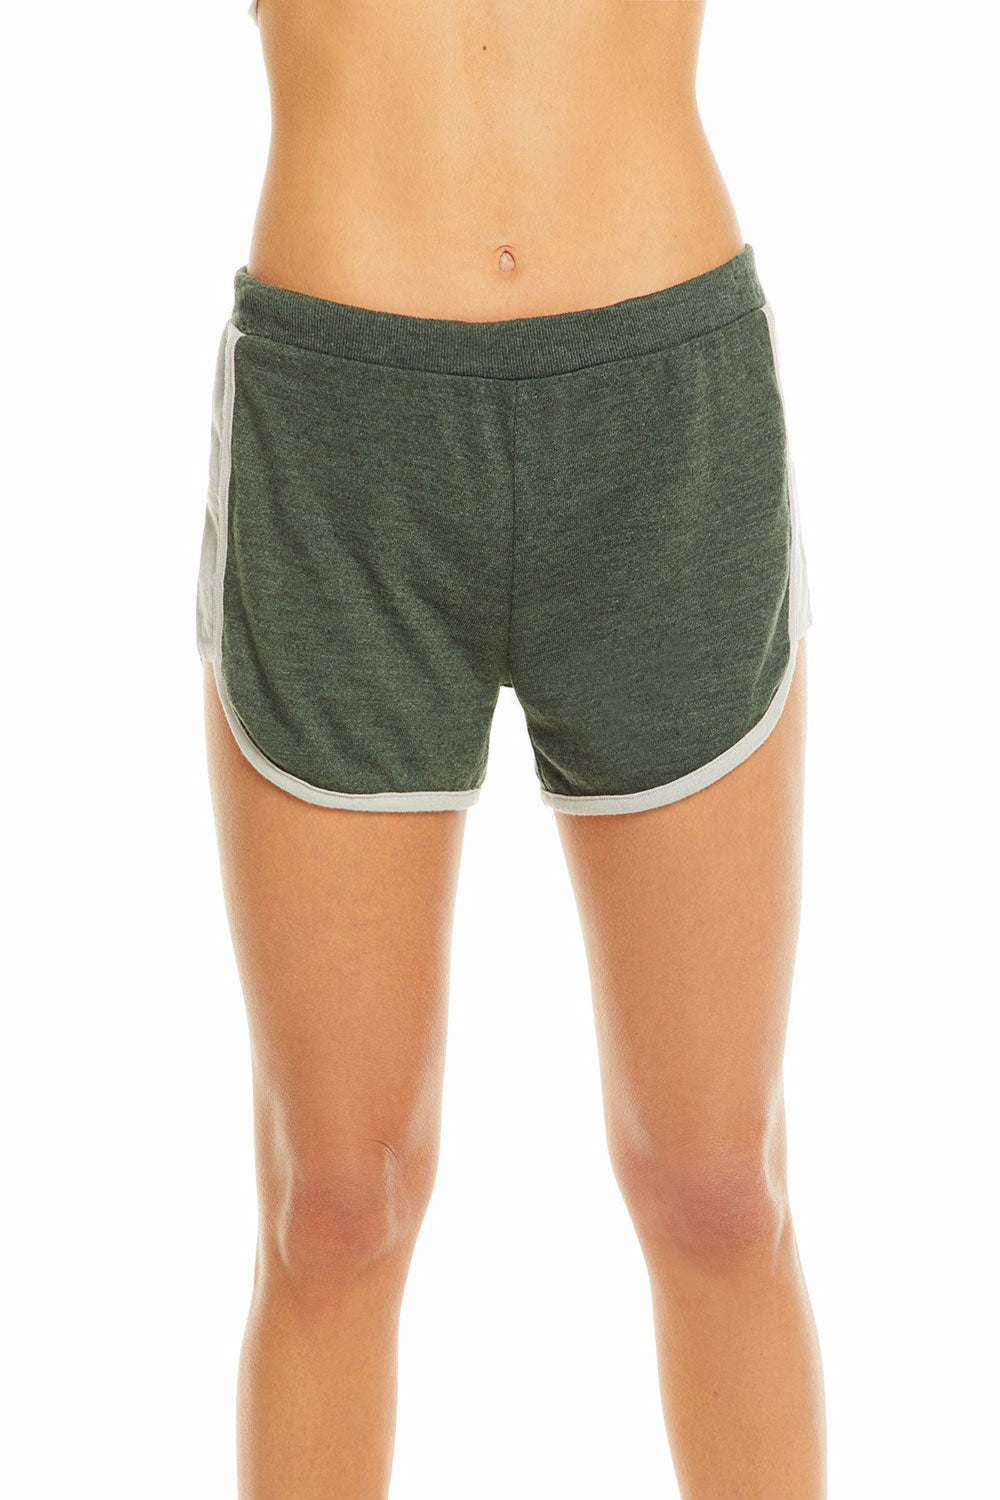 Blocked Jersey Track Shorts, WOMENS, chaserbrand.com,chaser clothing,chaser apparel,chaser los angeles